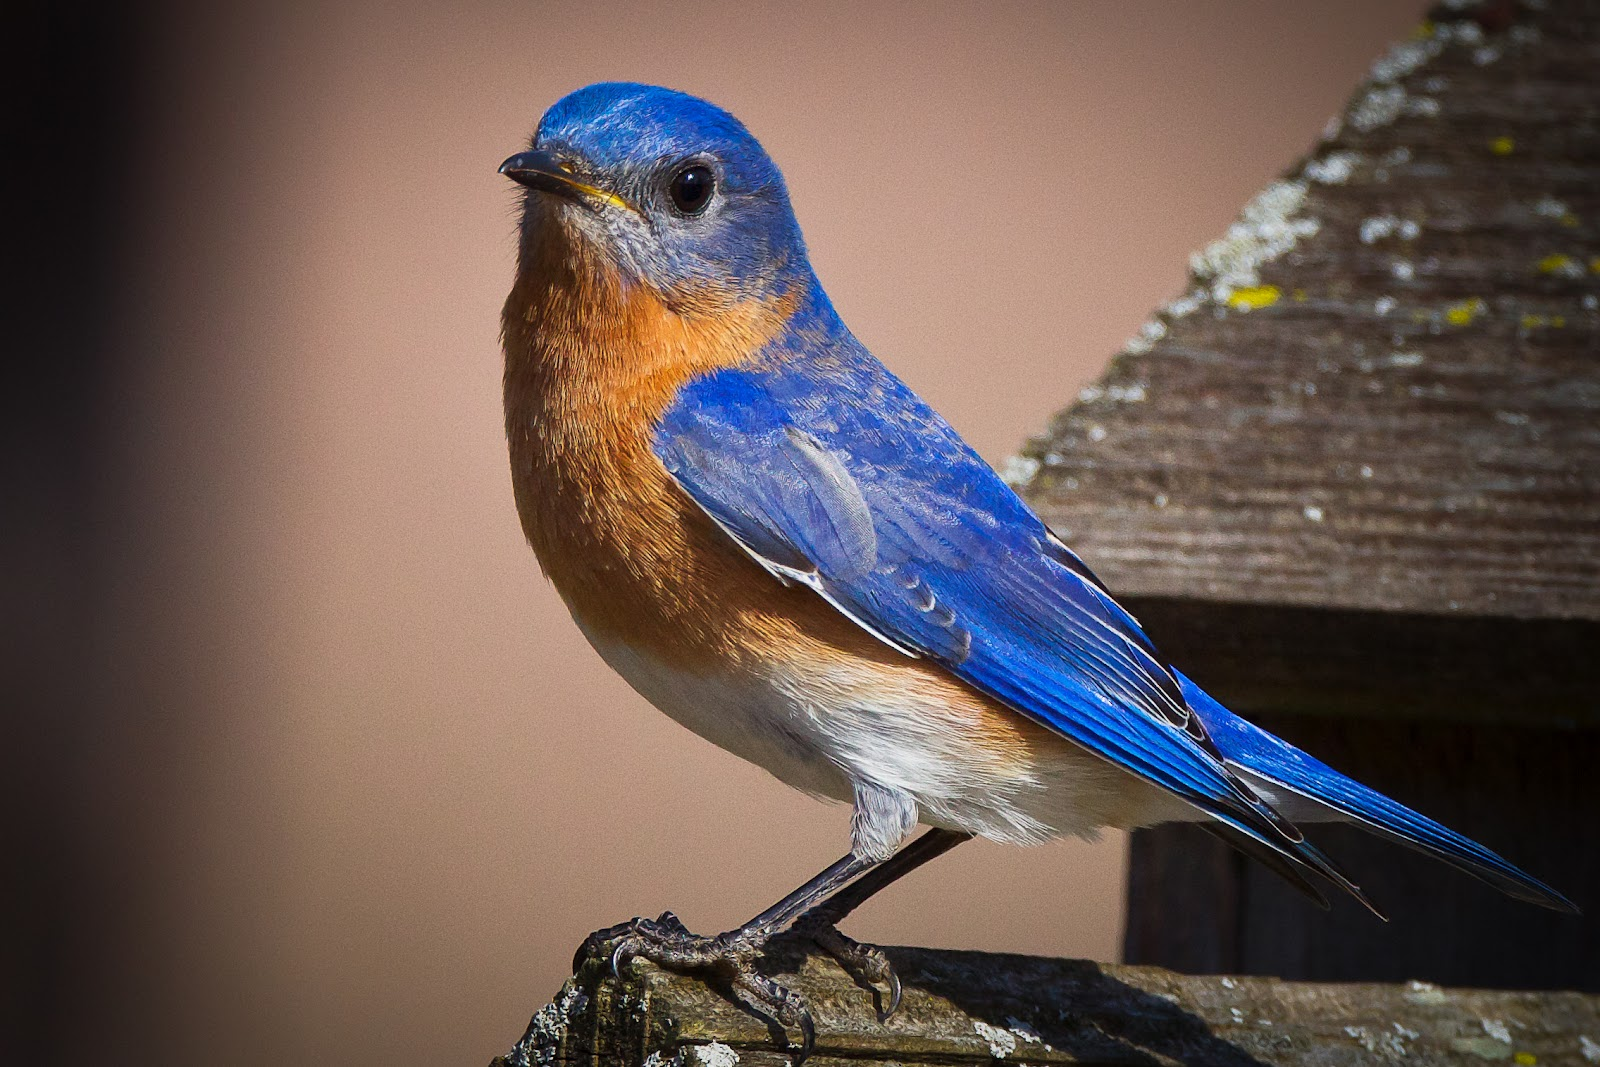 High Resolution Wallpaper | Eastern Bluebird 1600x1067 px